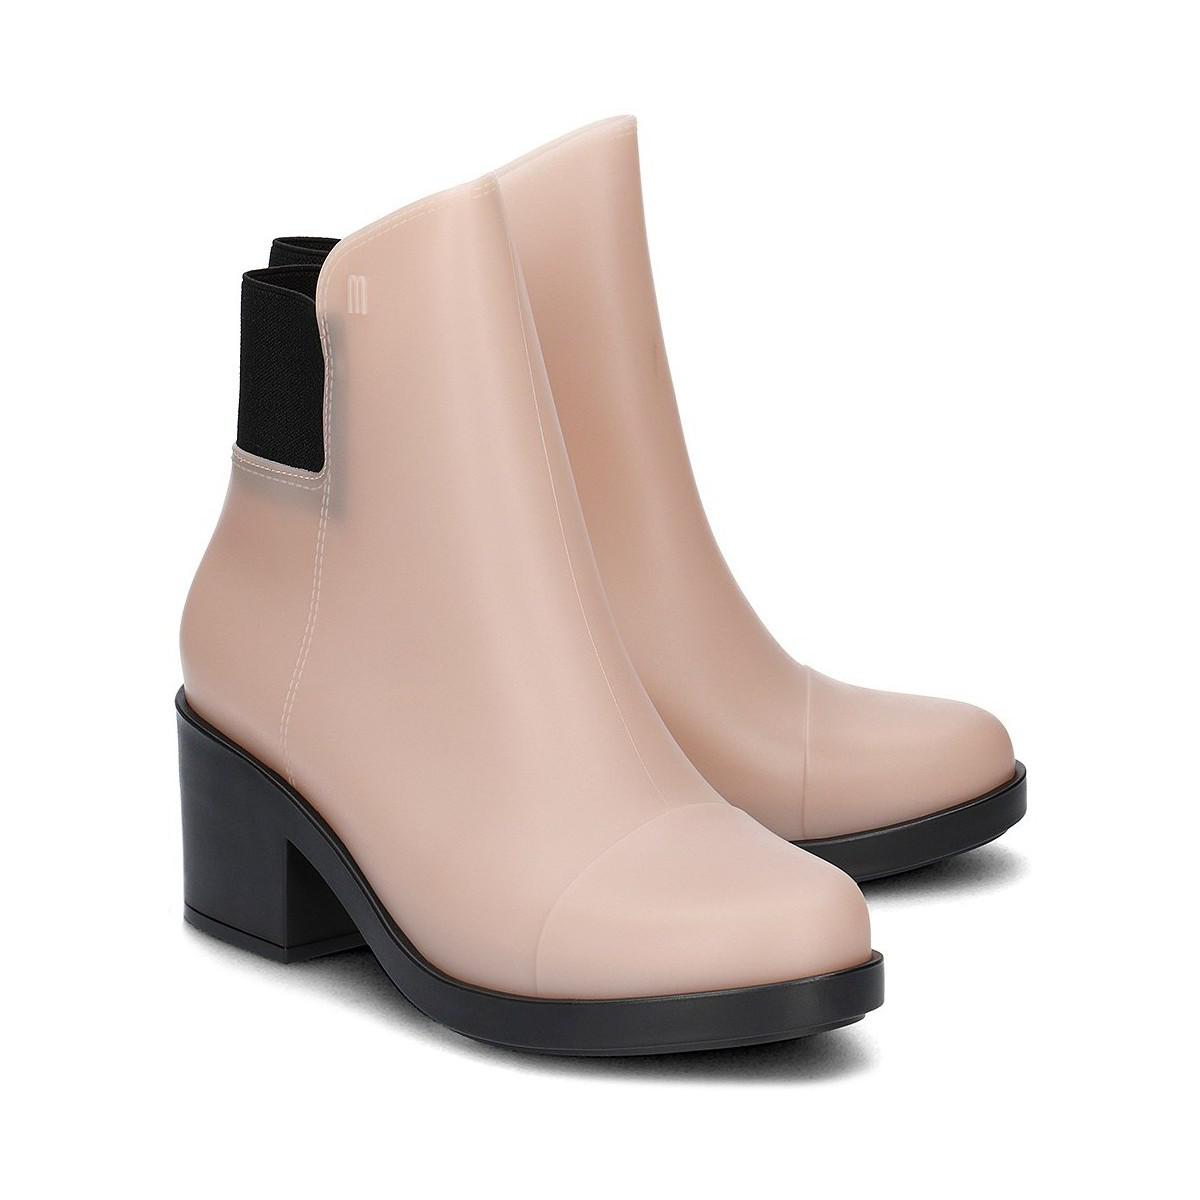 Melissa ELASTIC BOOT women's Low Ankle Boots in Latest 100% Original Browse 0cpsESMZS